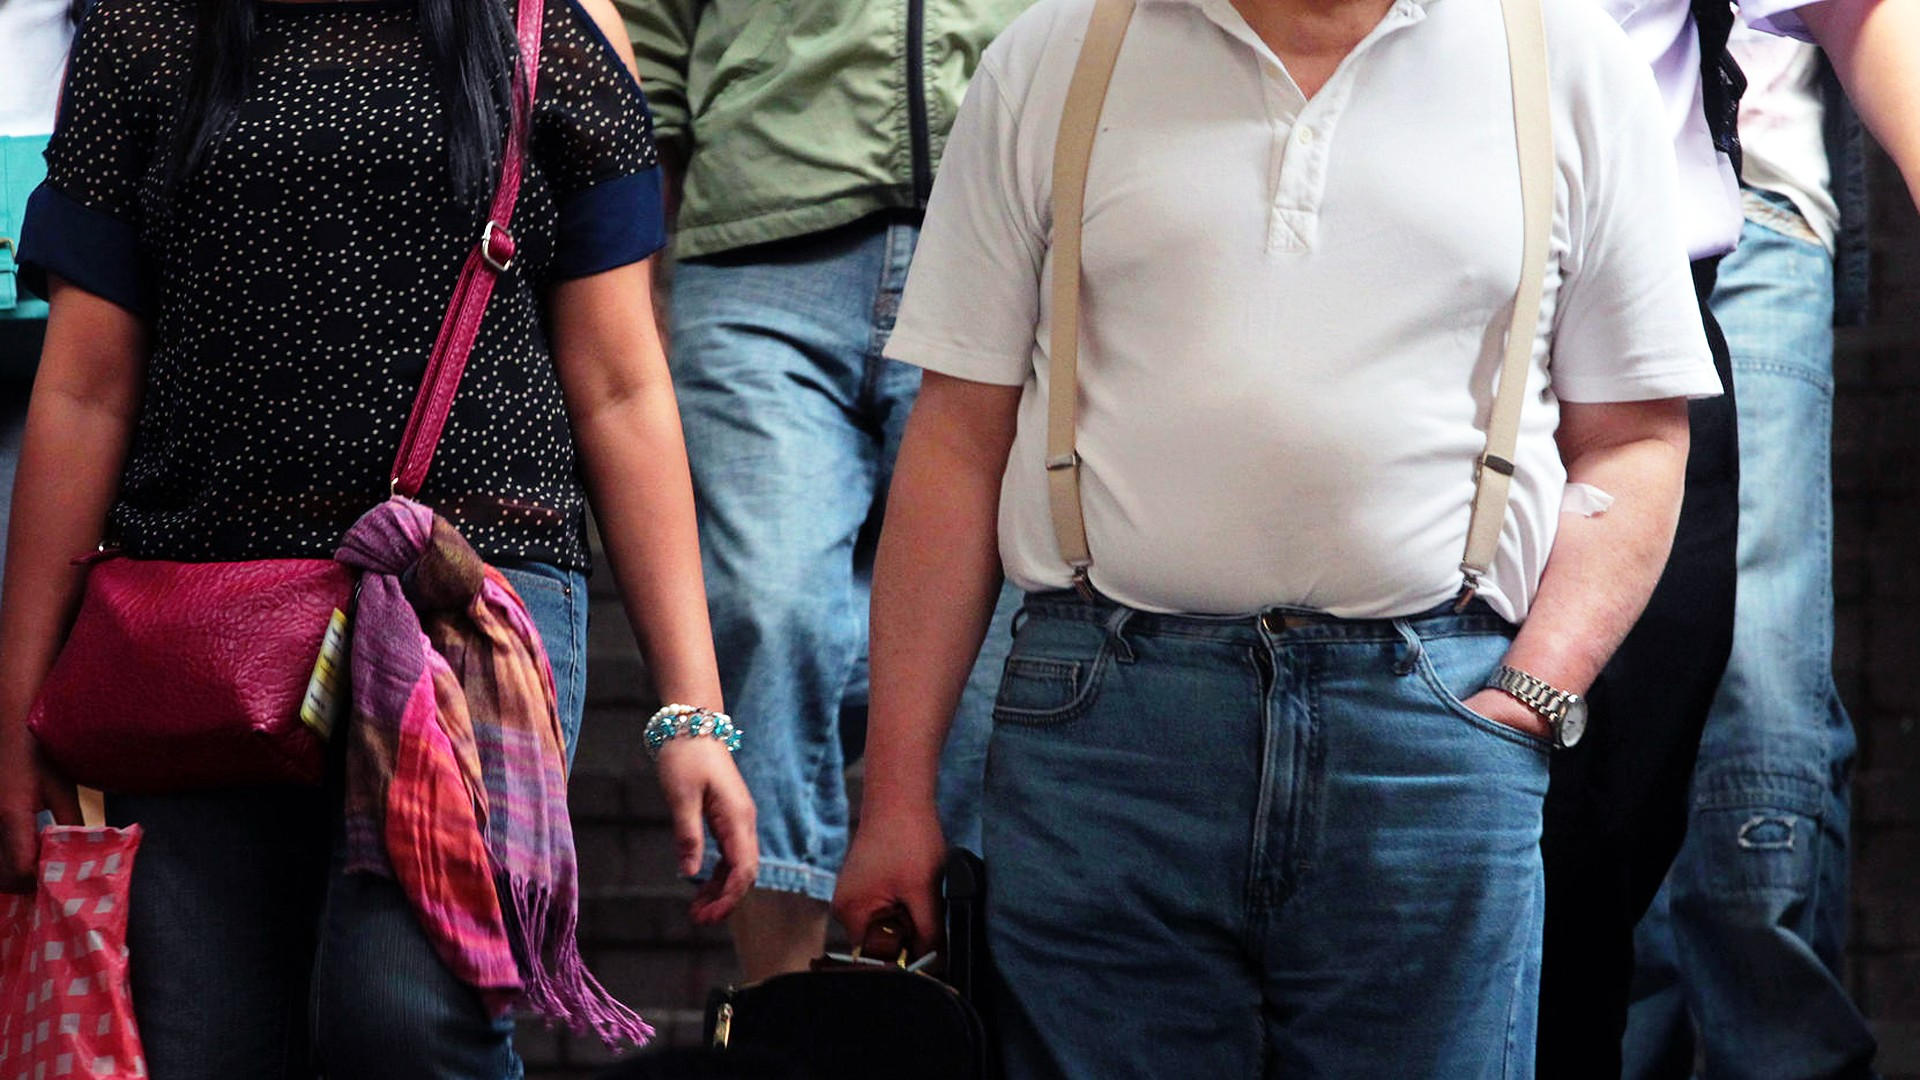 1d2814c665 Many Hong Kong men think they're slimmer than they are, obesity campaigners  say   South China Morning Post